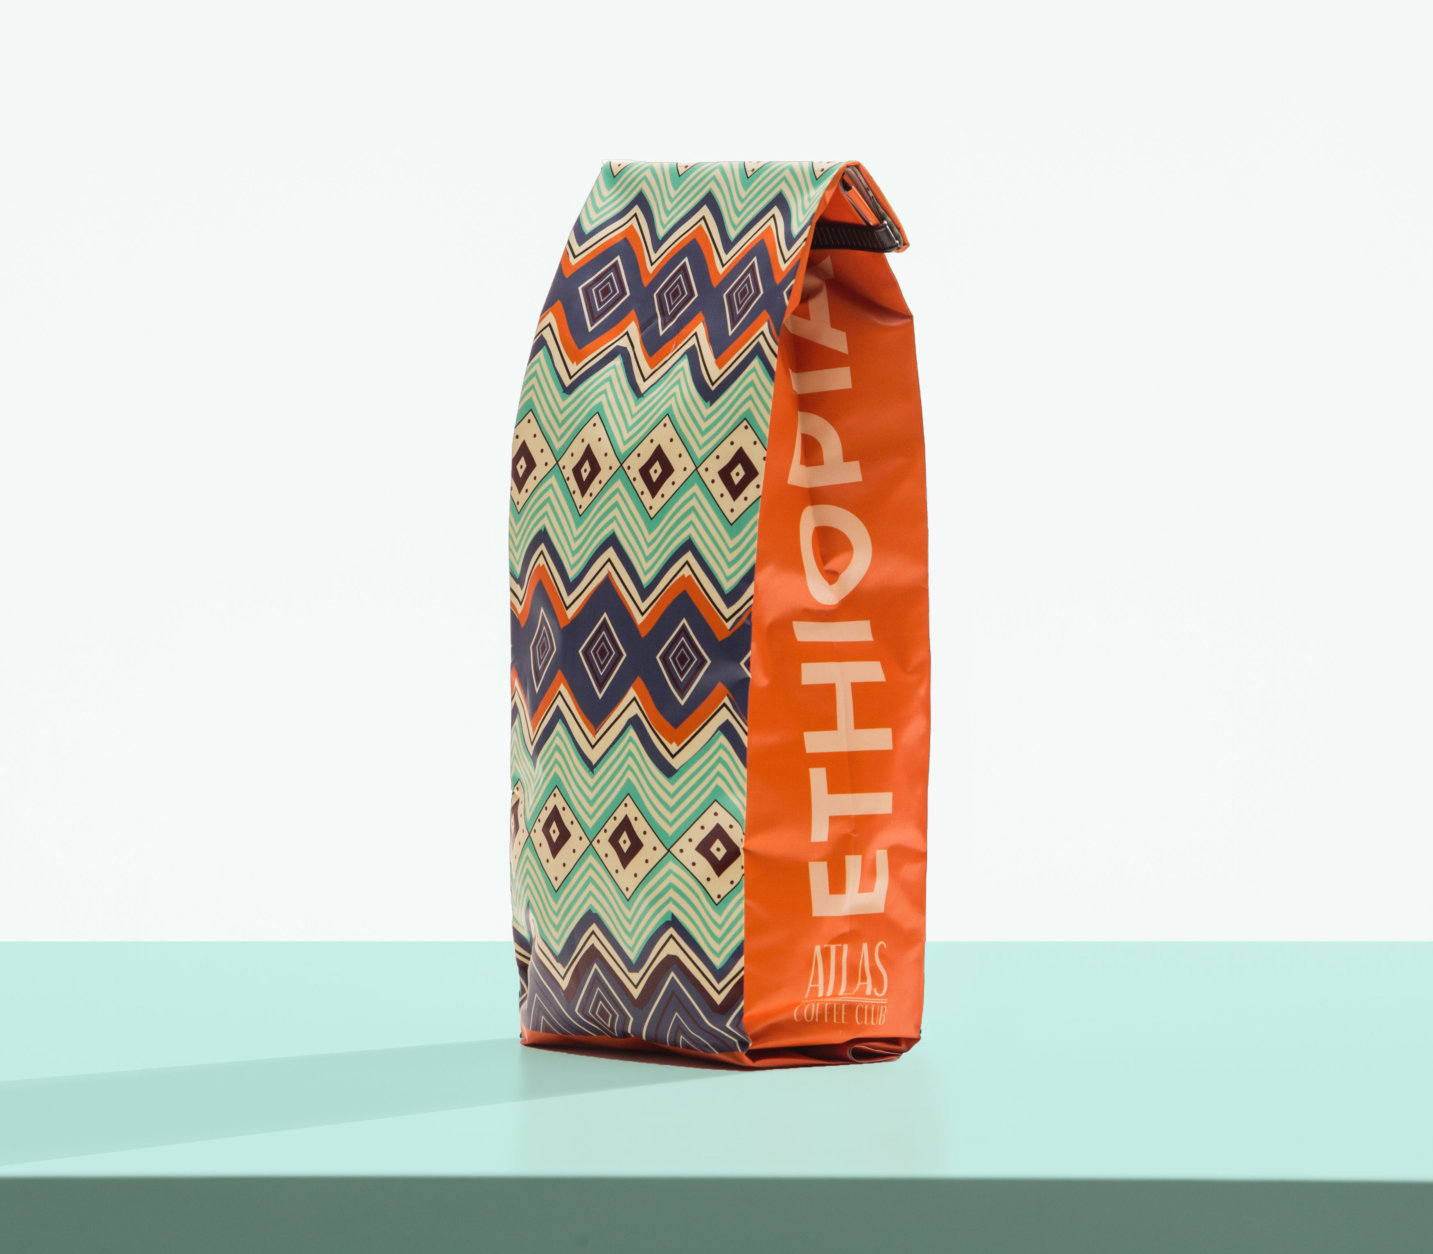 Atlas Coffee Club, a monthly subscription service that delivers coffee from around the world to you, is offering a free 12 ounce bag of coffee to new subscribers. (Courtesy Atlas Coffee Club)